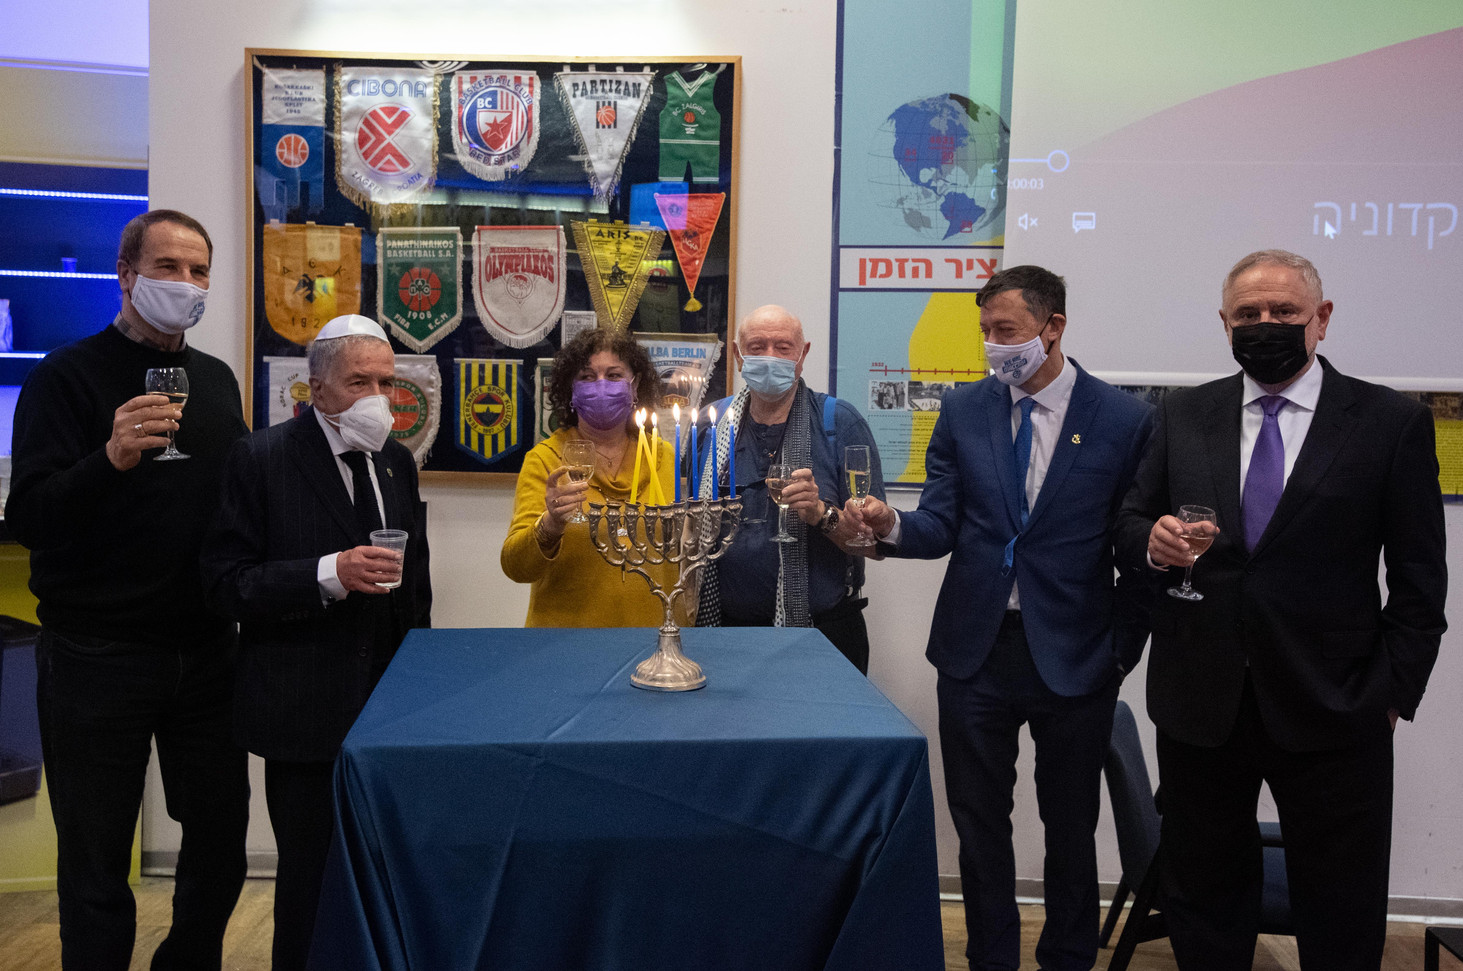 Maccabi TA lights Hanukkah candles in memory of North Macedonia's Jews